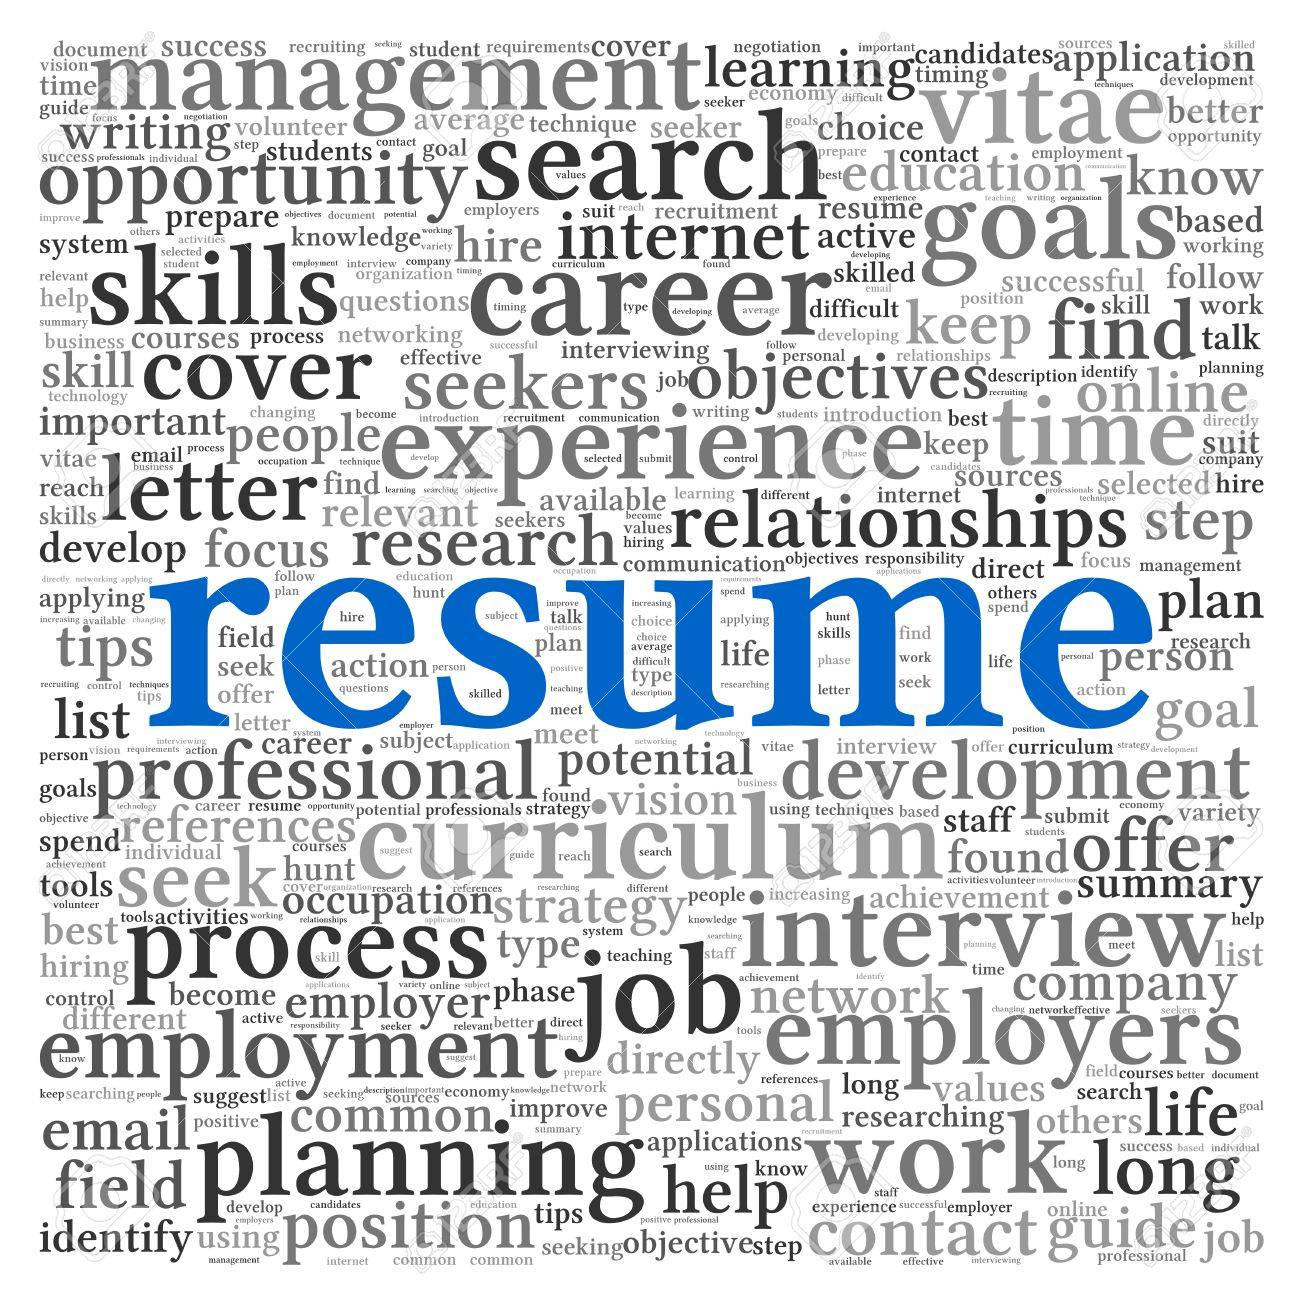 resume concept in word tag cloud on white background stock photo resume concept in word tag cloud on white background stock photo 15357593